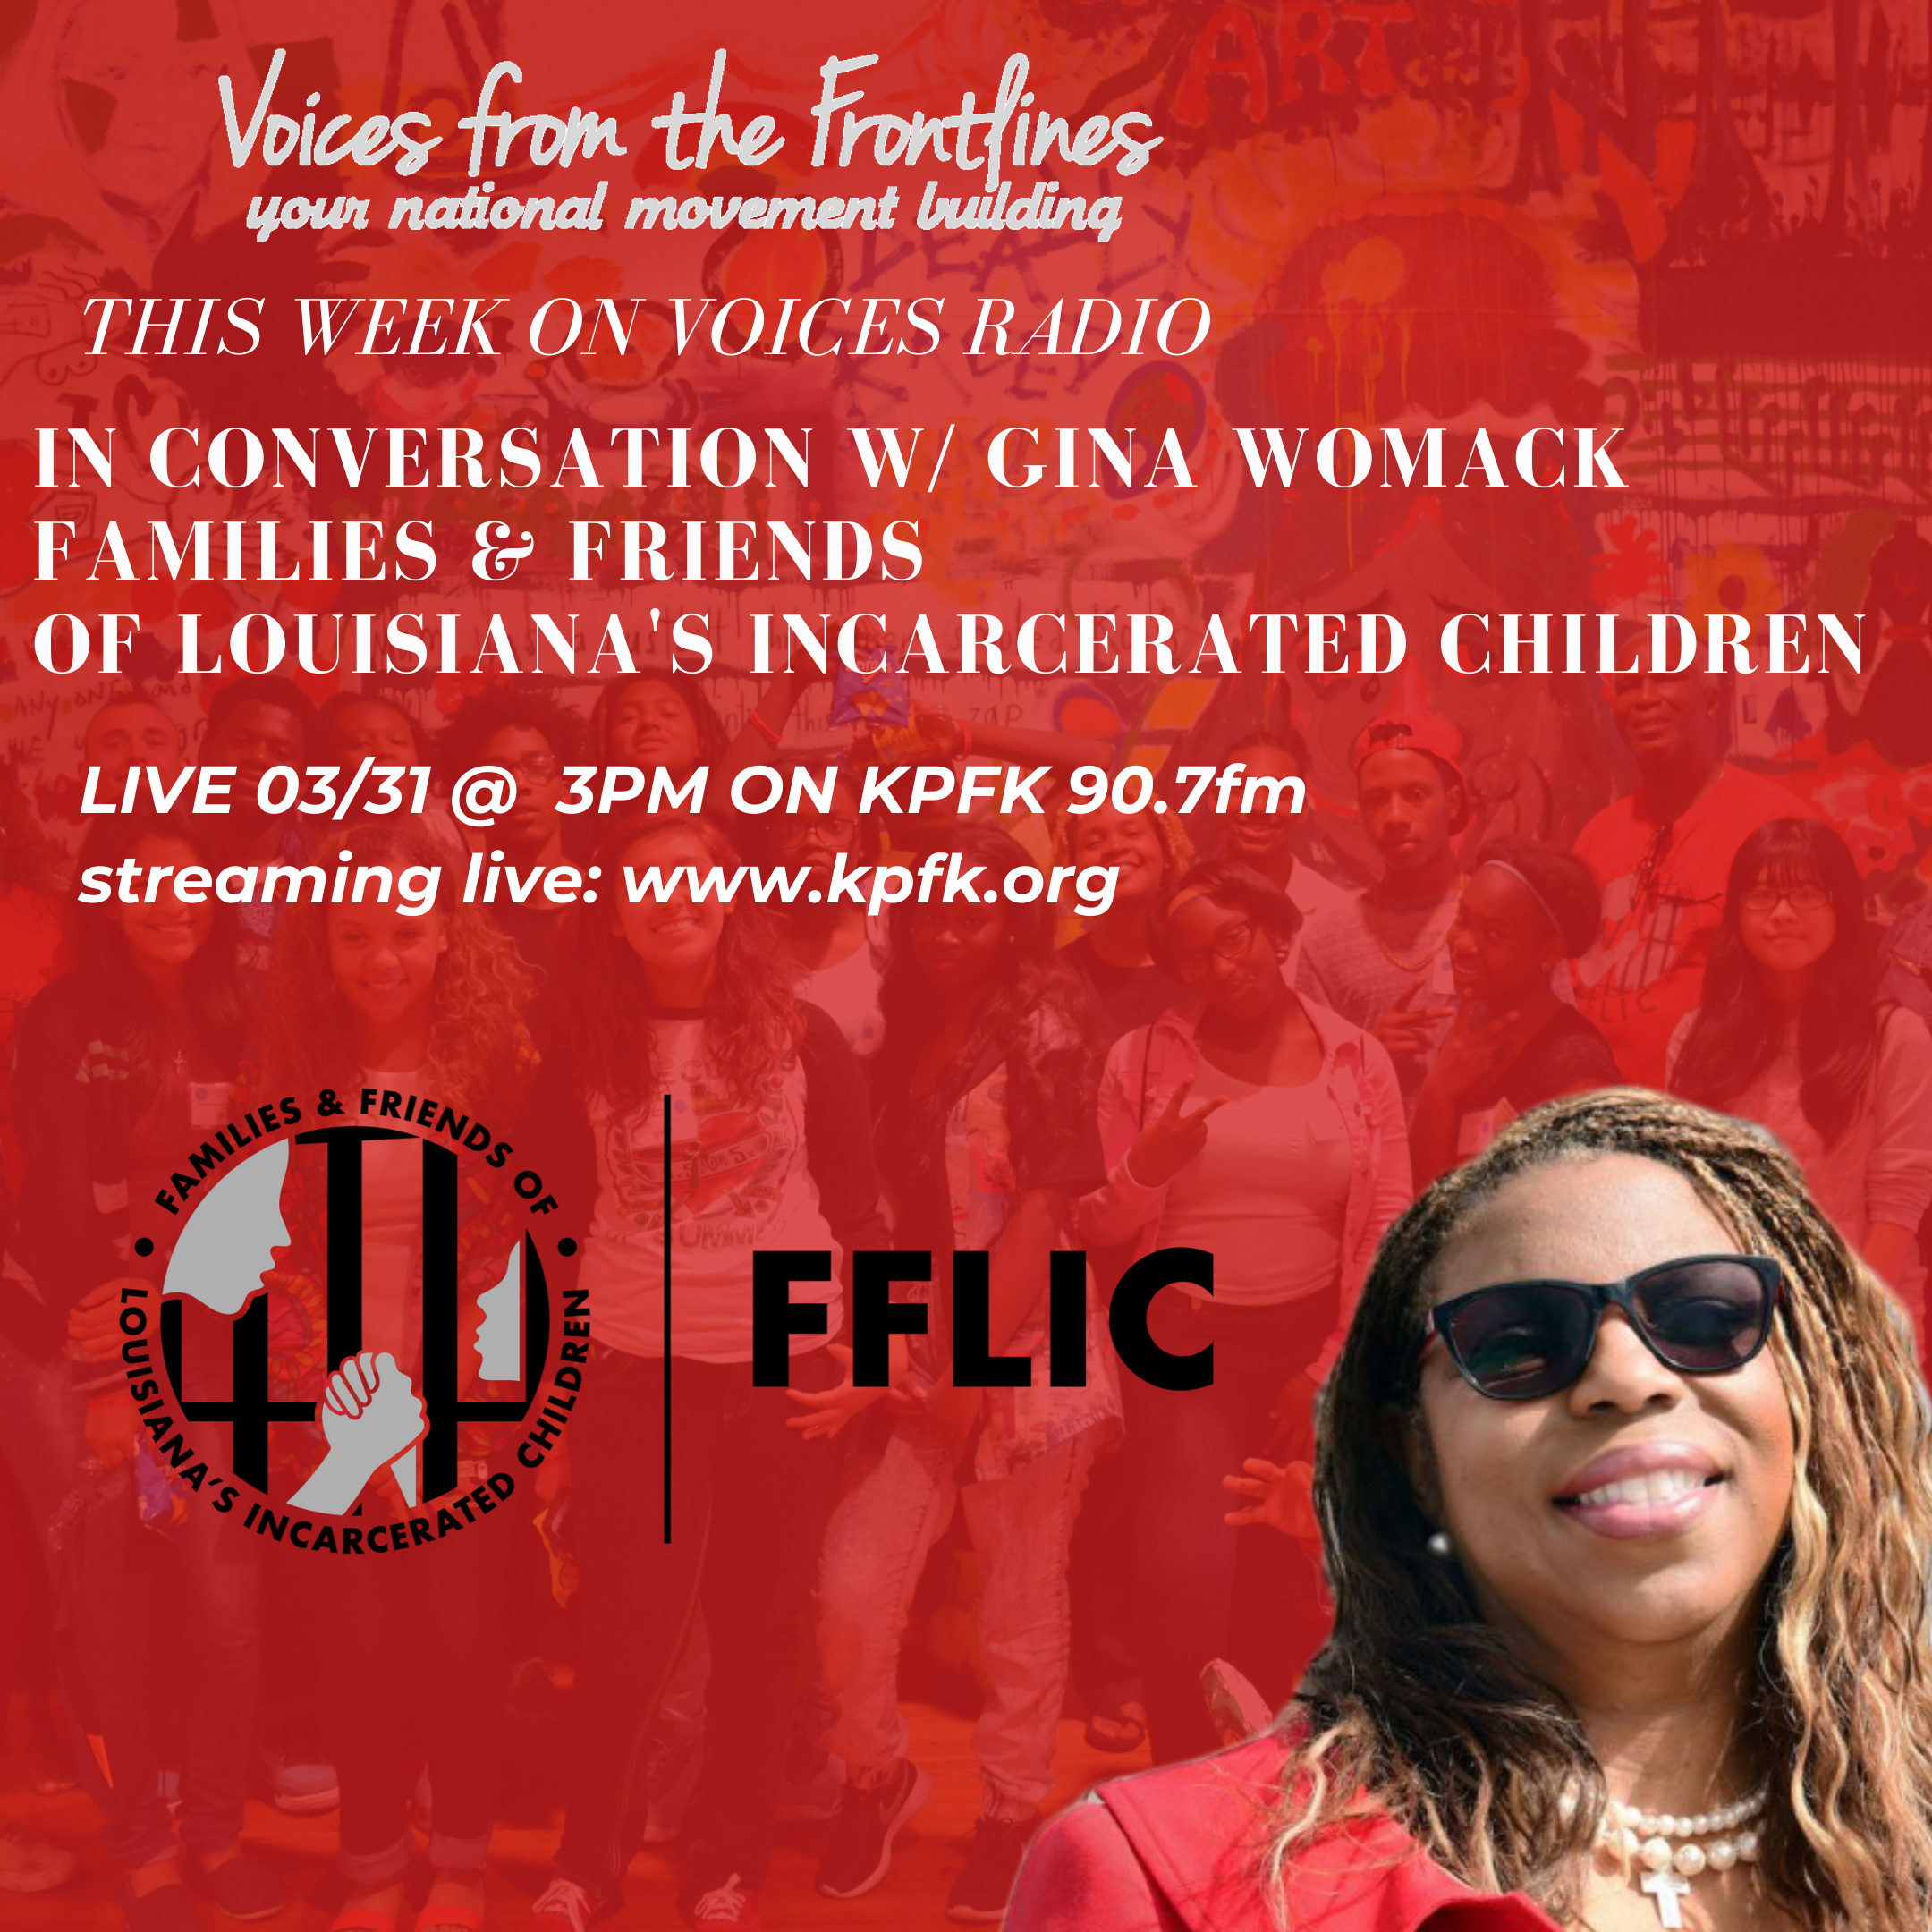 TODAY ON VOICES RADIO: In Conversation with Gina Womack   Director of Families and Friends of Louisiana's Incarcerated Children